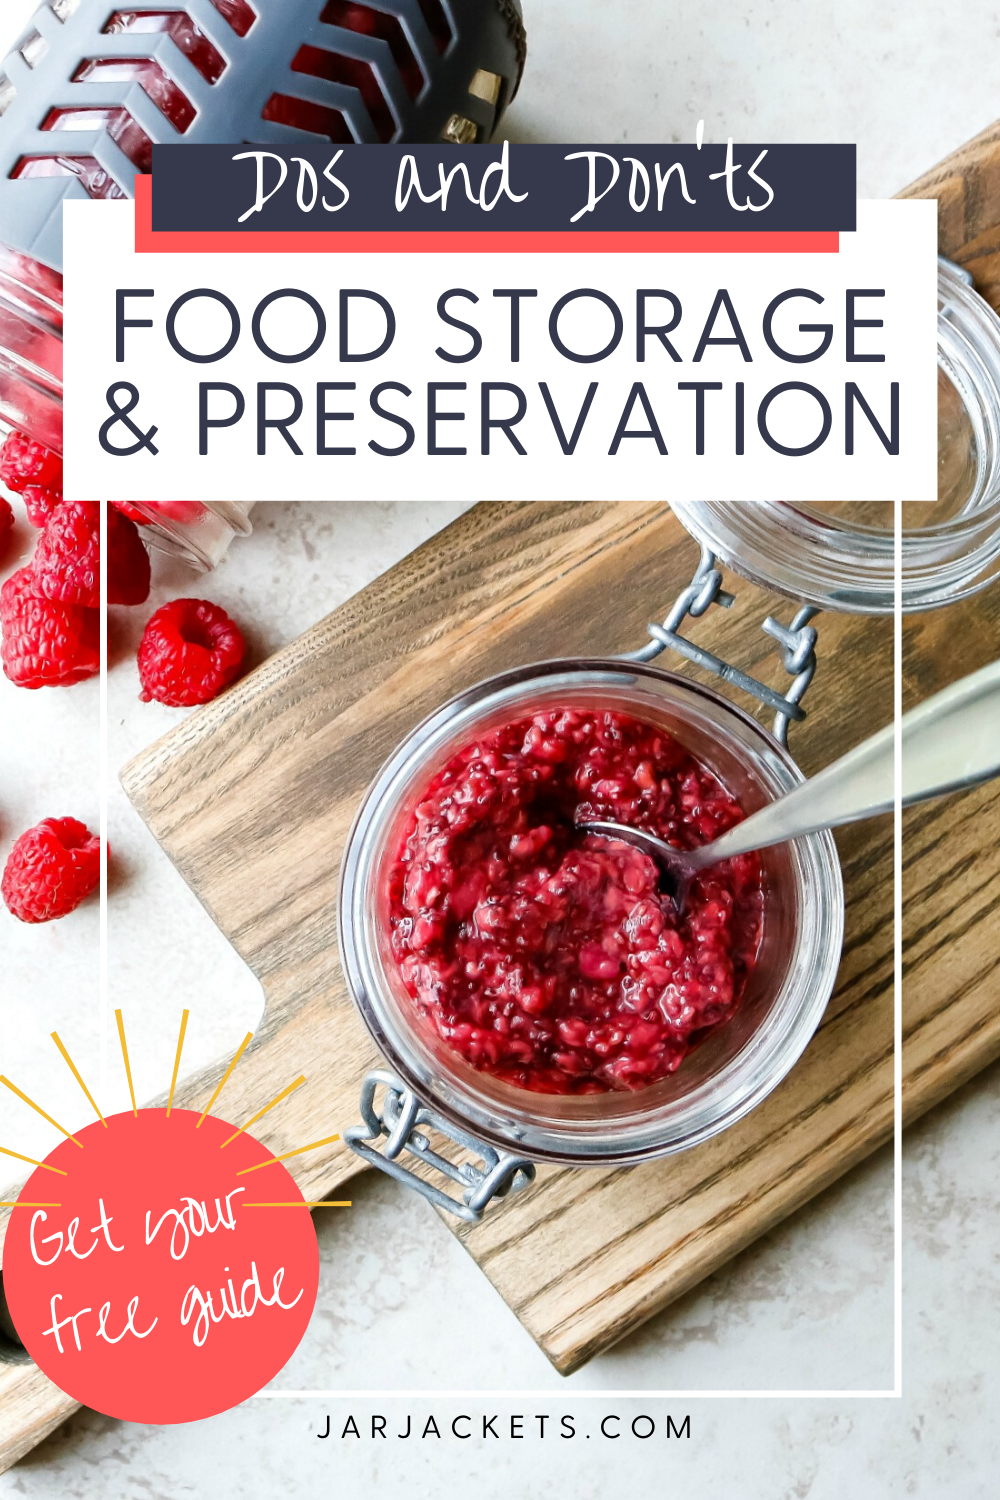 Dos and Don'ts - Food Preservation & Storage